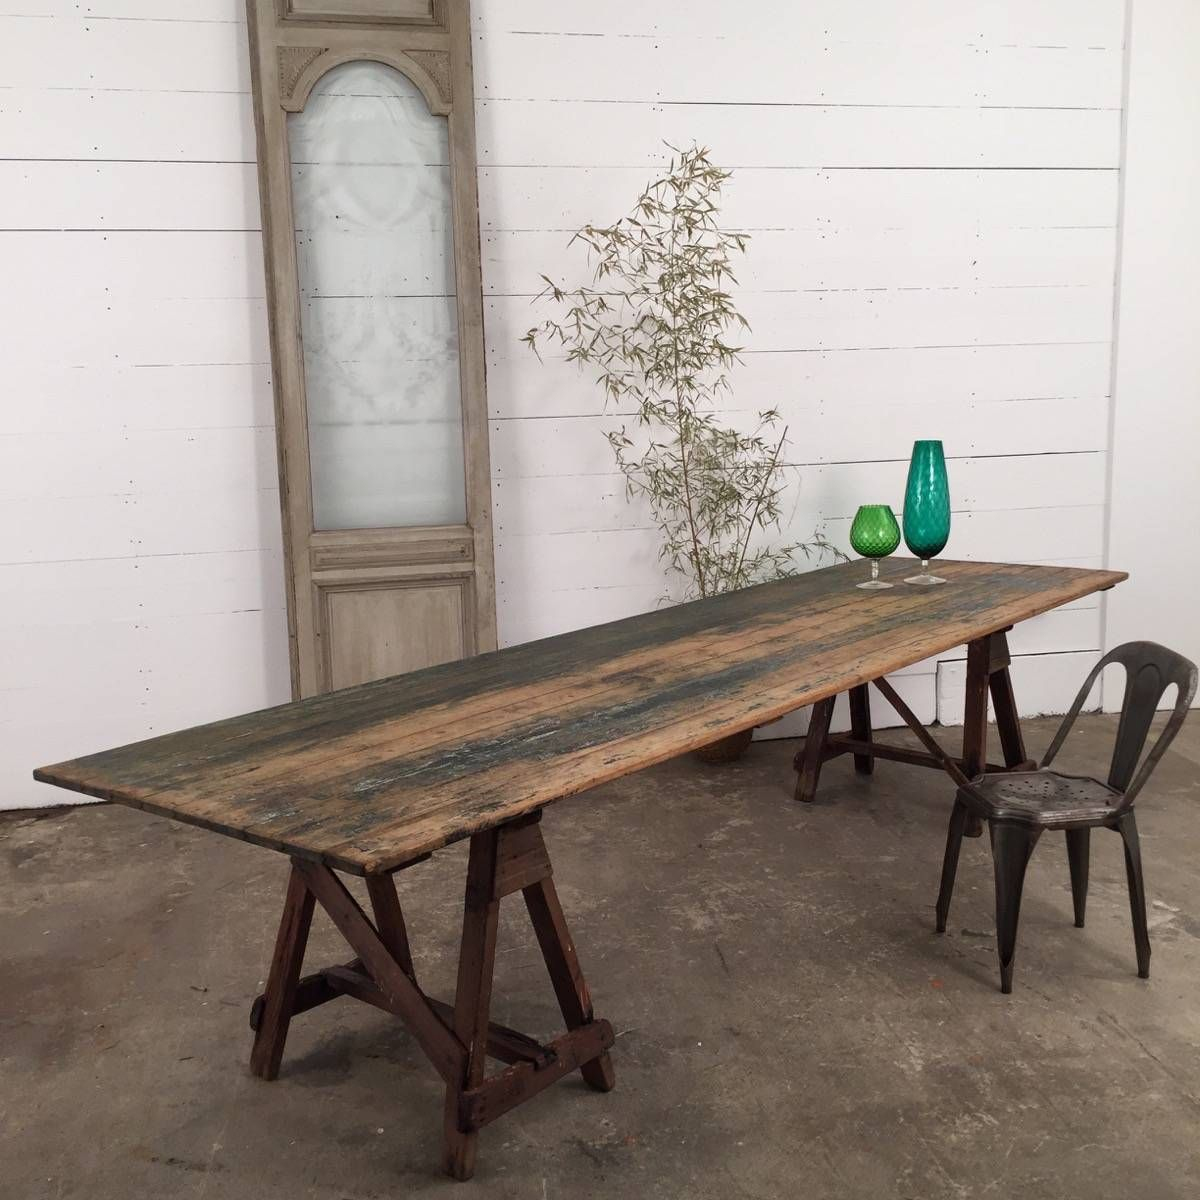 Espace nord Ouest Inspirant Photos Large Industrial Wooden Trestle Table Espace nord Ouest